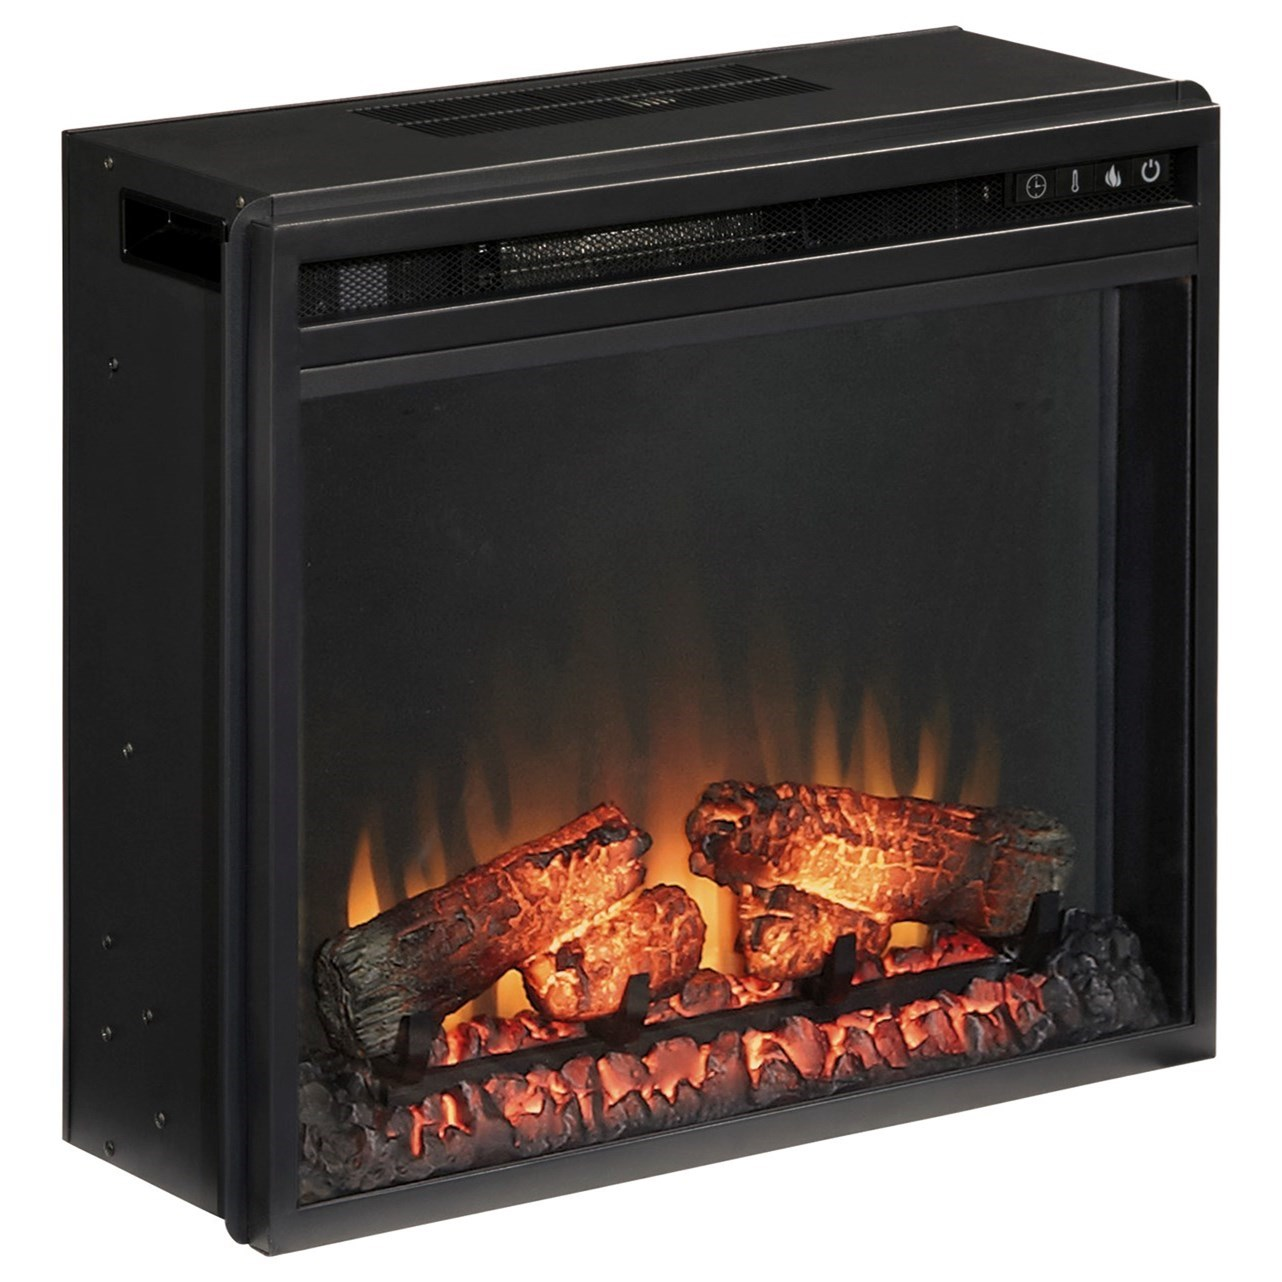 Signature Design by Ashley Entertainment Accessories Fireplace Insert - Item Number: W100-01